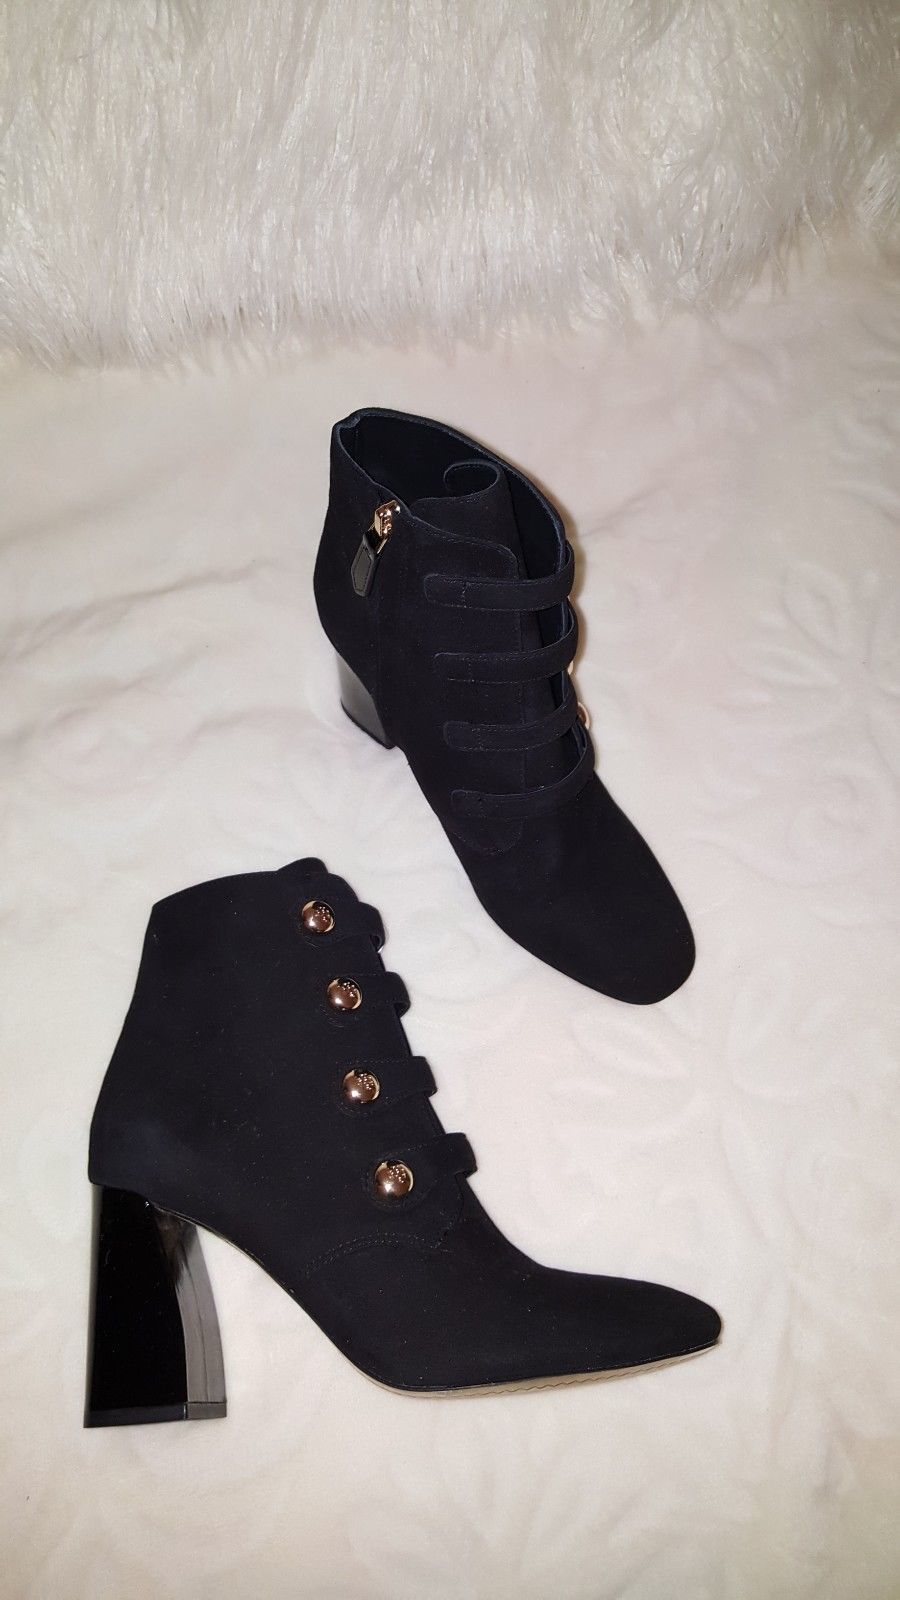 1ff65c85bf2 Tory Burch Black Fine Suede Gold Buttons Ankle Heel Boots Size 8